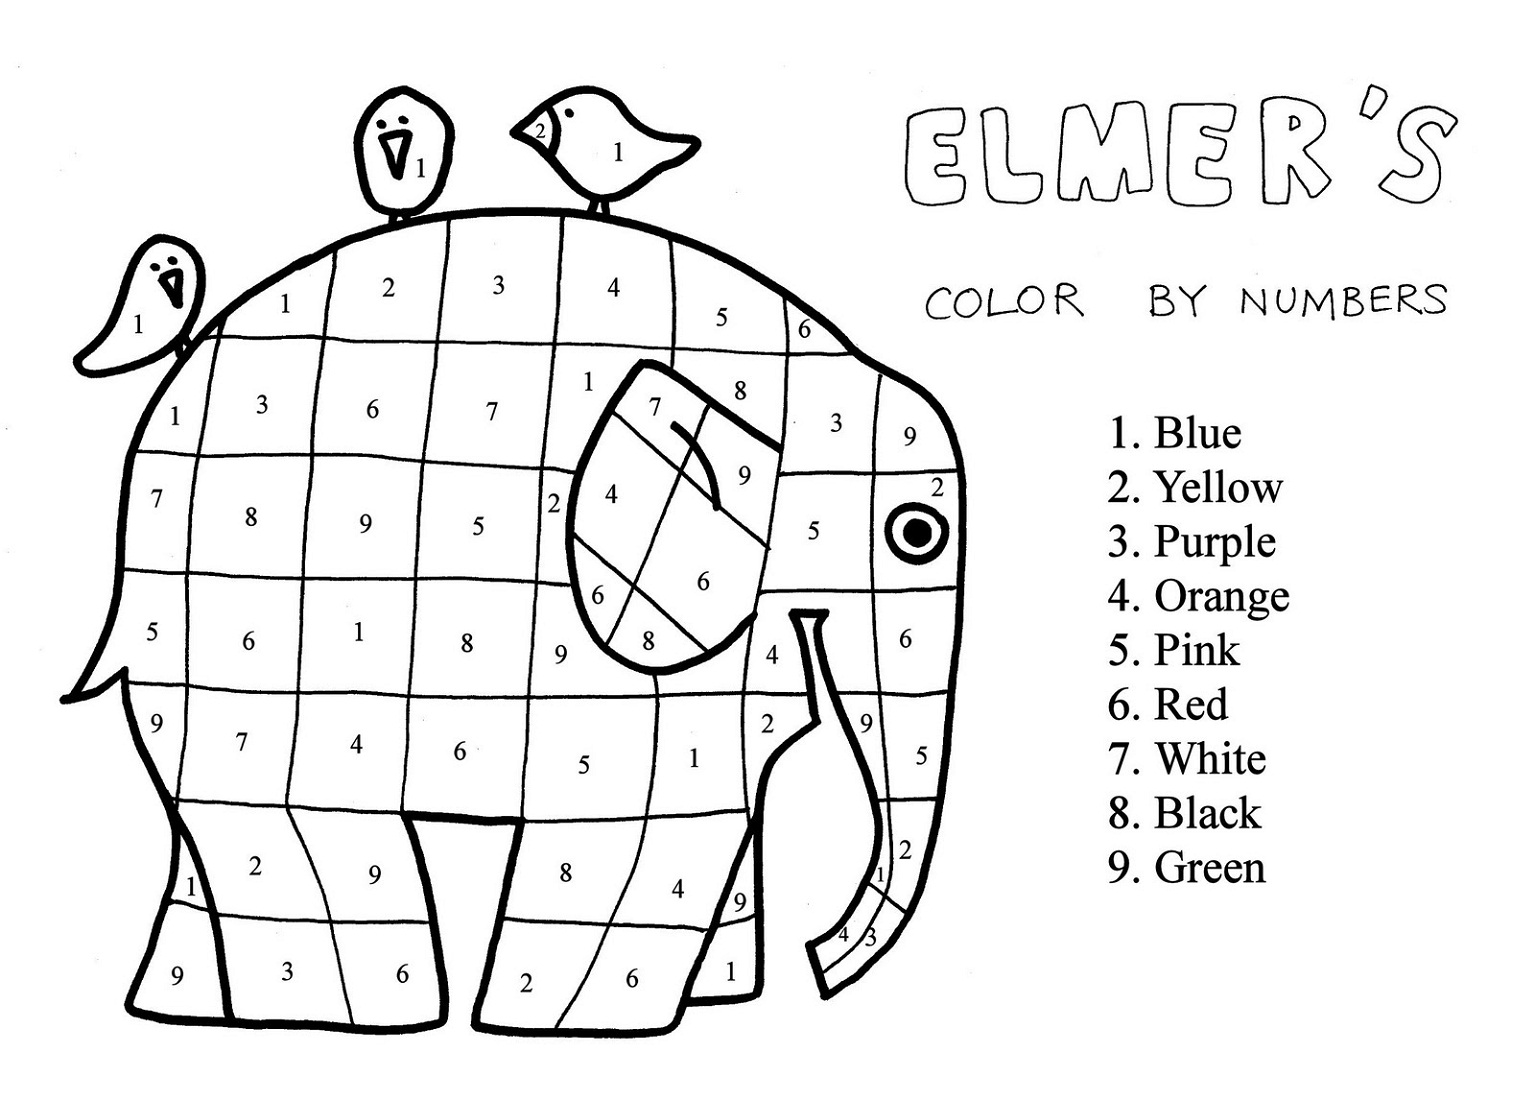 color-by-number-pictures-elmers